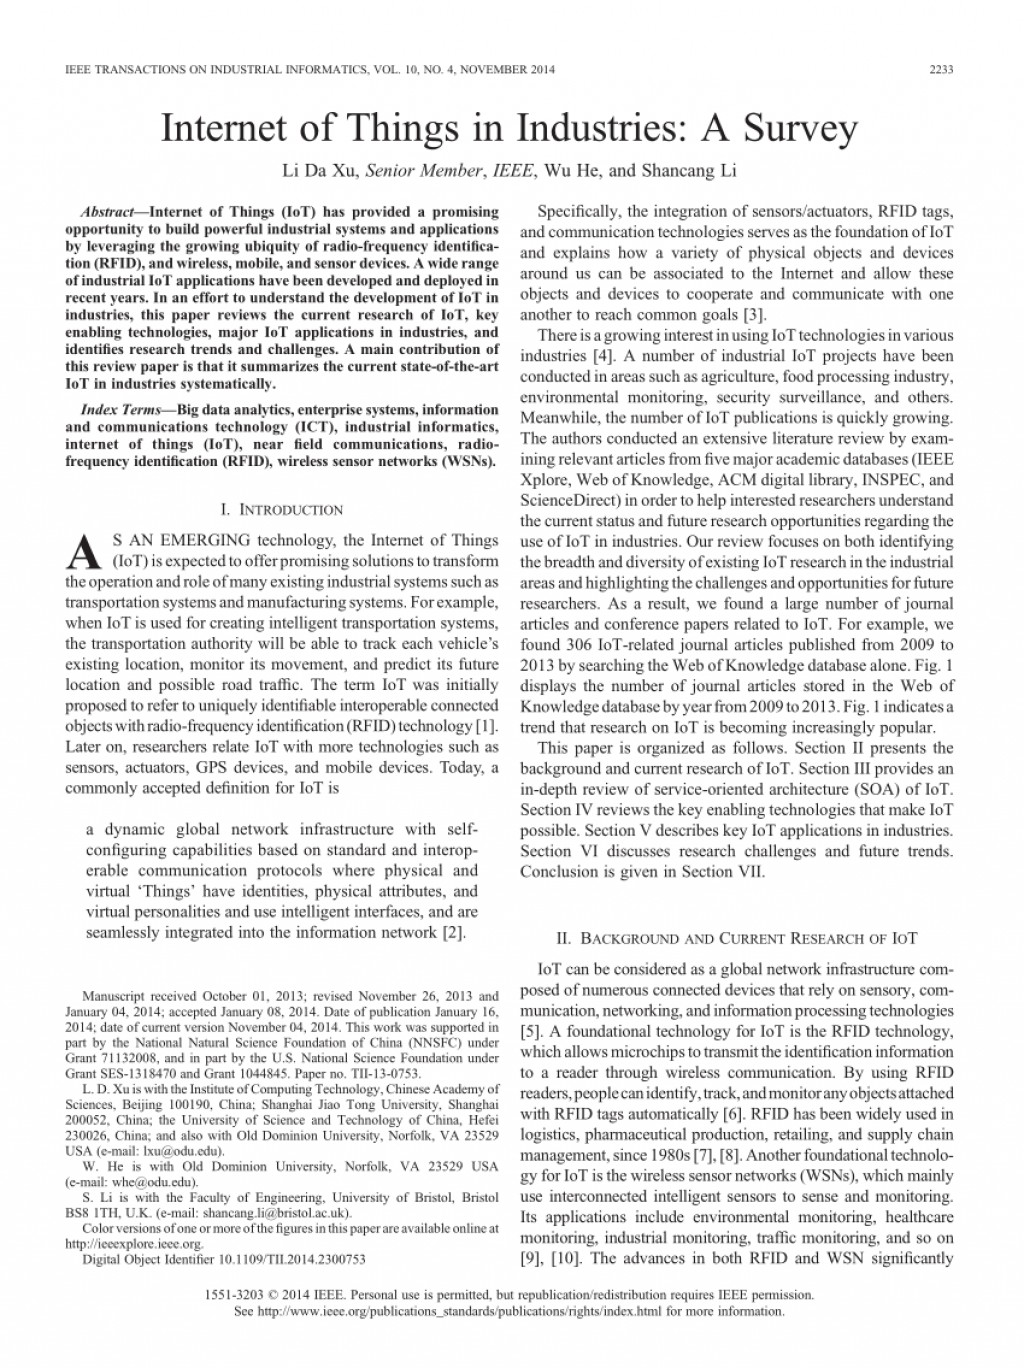 008 Largepreview Ieee Research Paper On Cyber Security Breathtaking Pdf Network Large